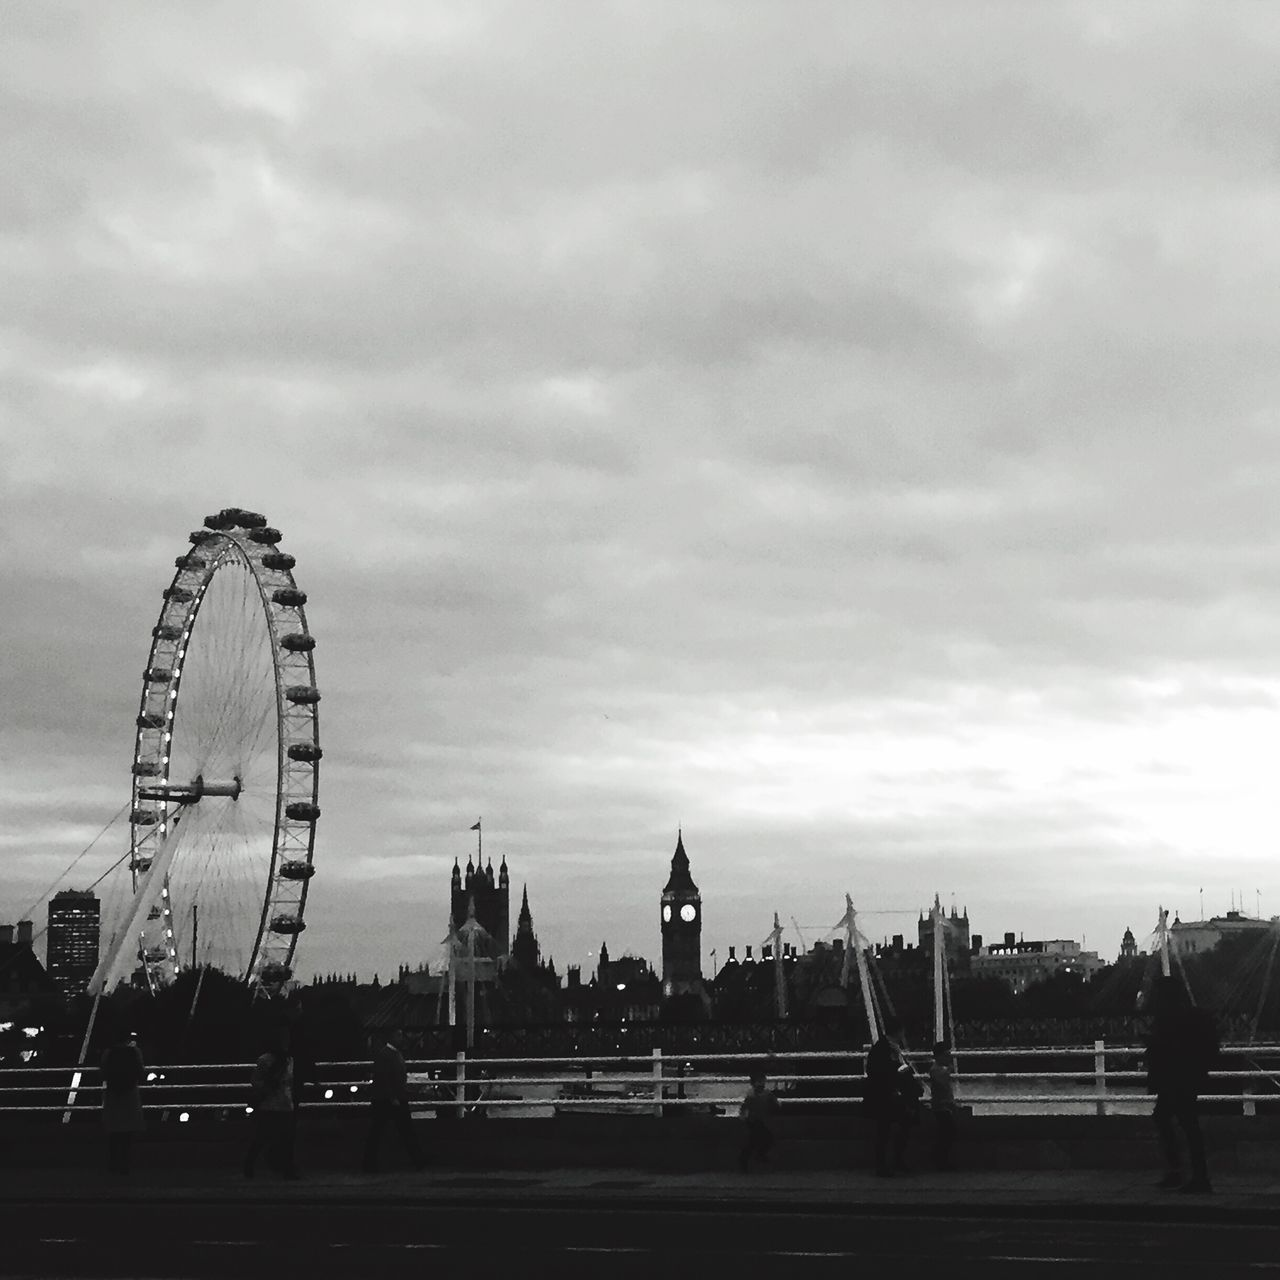 View from Waterloo Bridge. Ferris Wheel City Sky Outdoors No People London Eye Big Ben Elizabeth Tower Westminster Houses Of Parliament Waterloo Bridge London B&w B&w Street Photography Thames Thames River